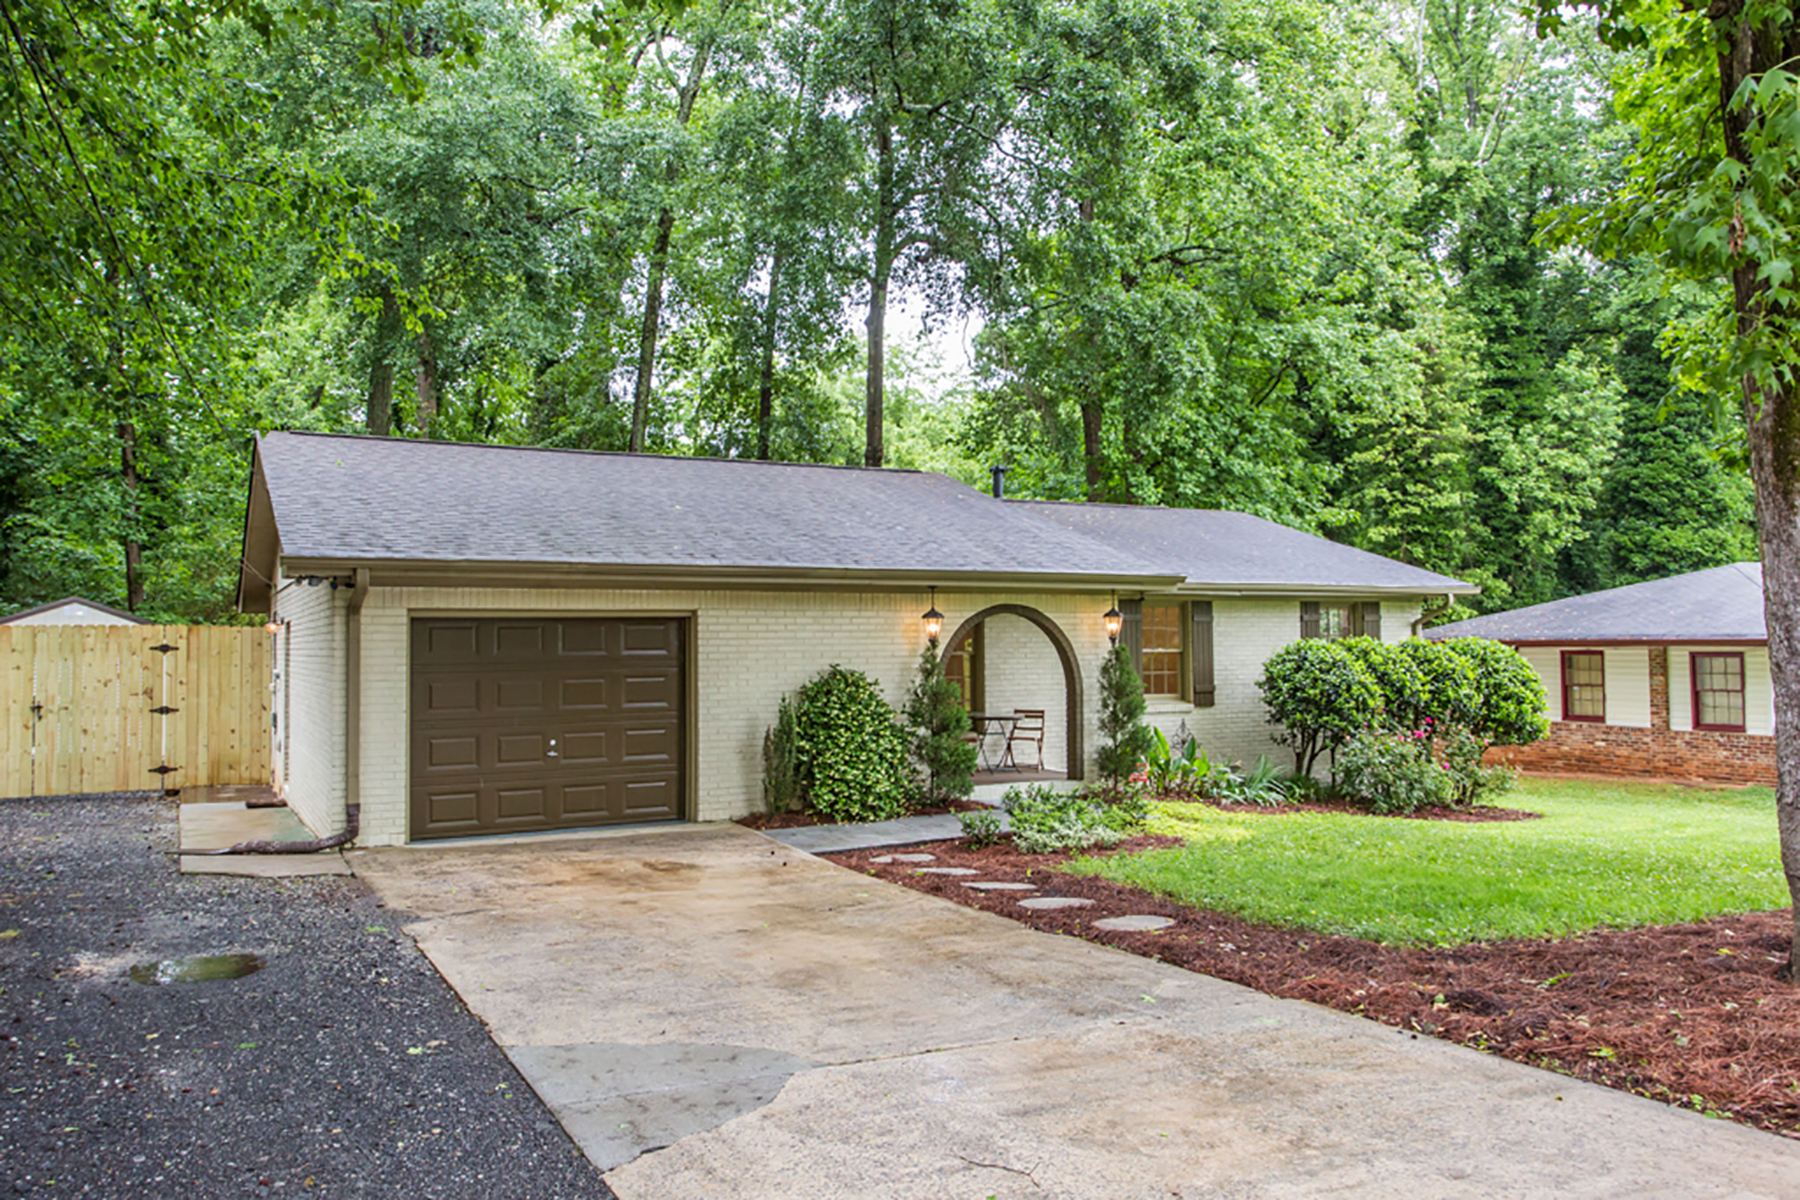 Single Family Home for Sale at Charming Decatur Ranch on Beautiful Lot 2360 Eiffel Ct Decatur, Georgia 30032 United States